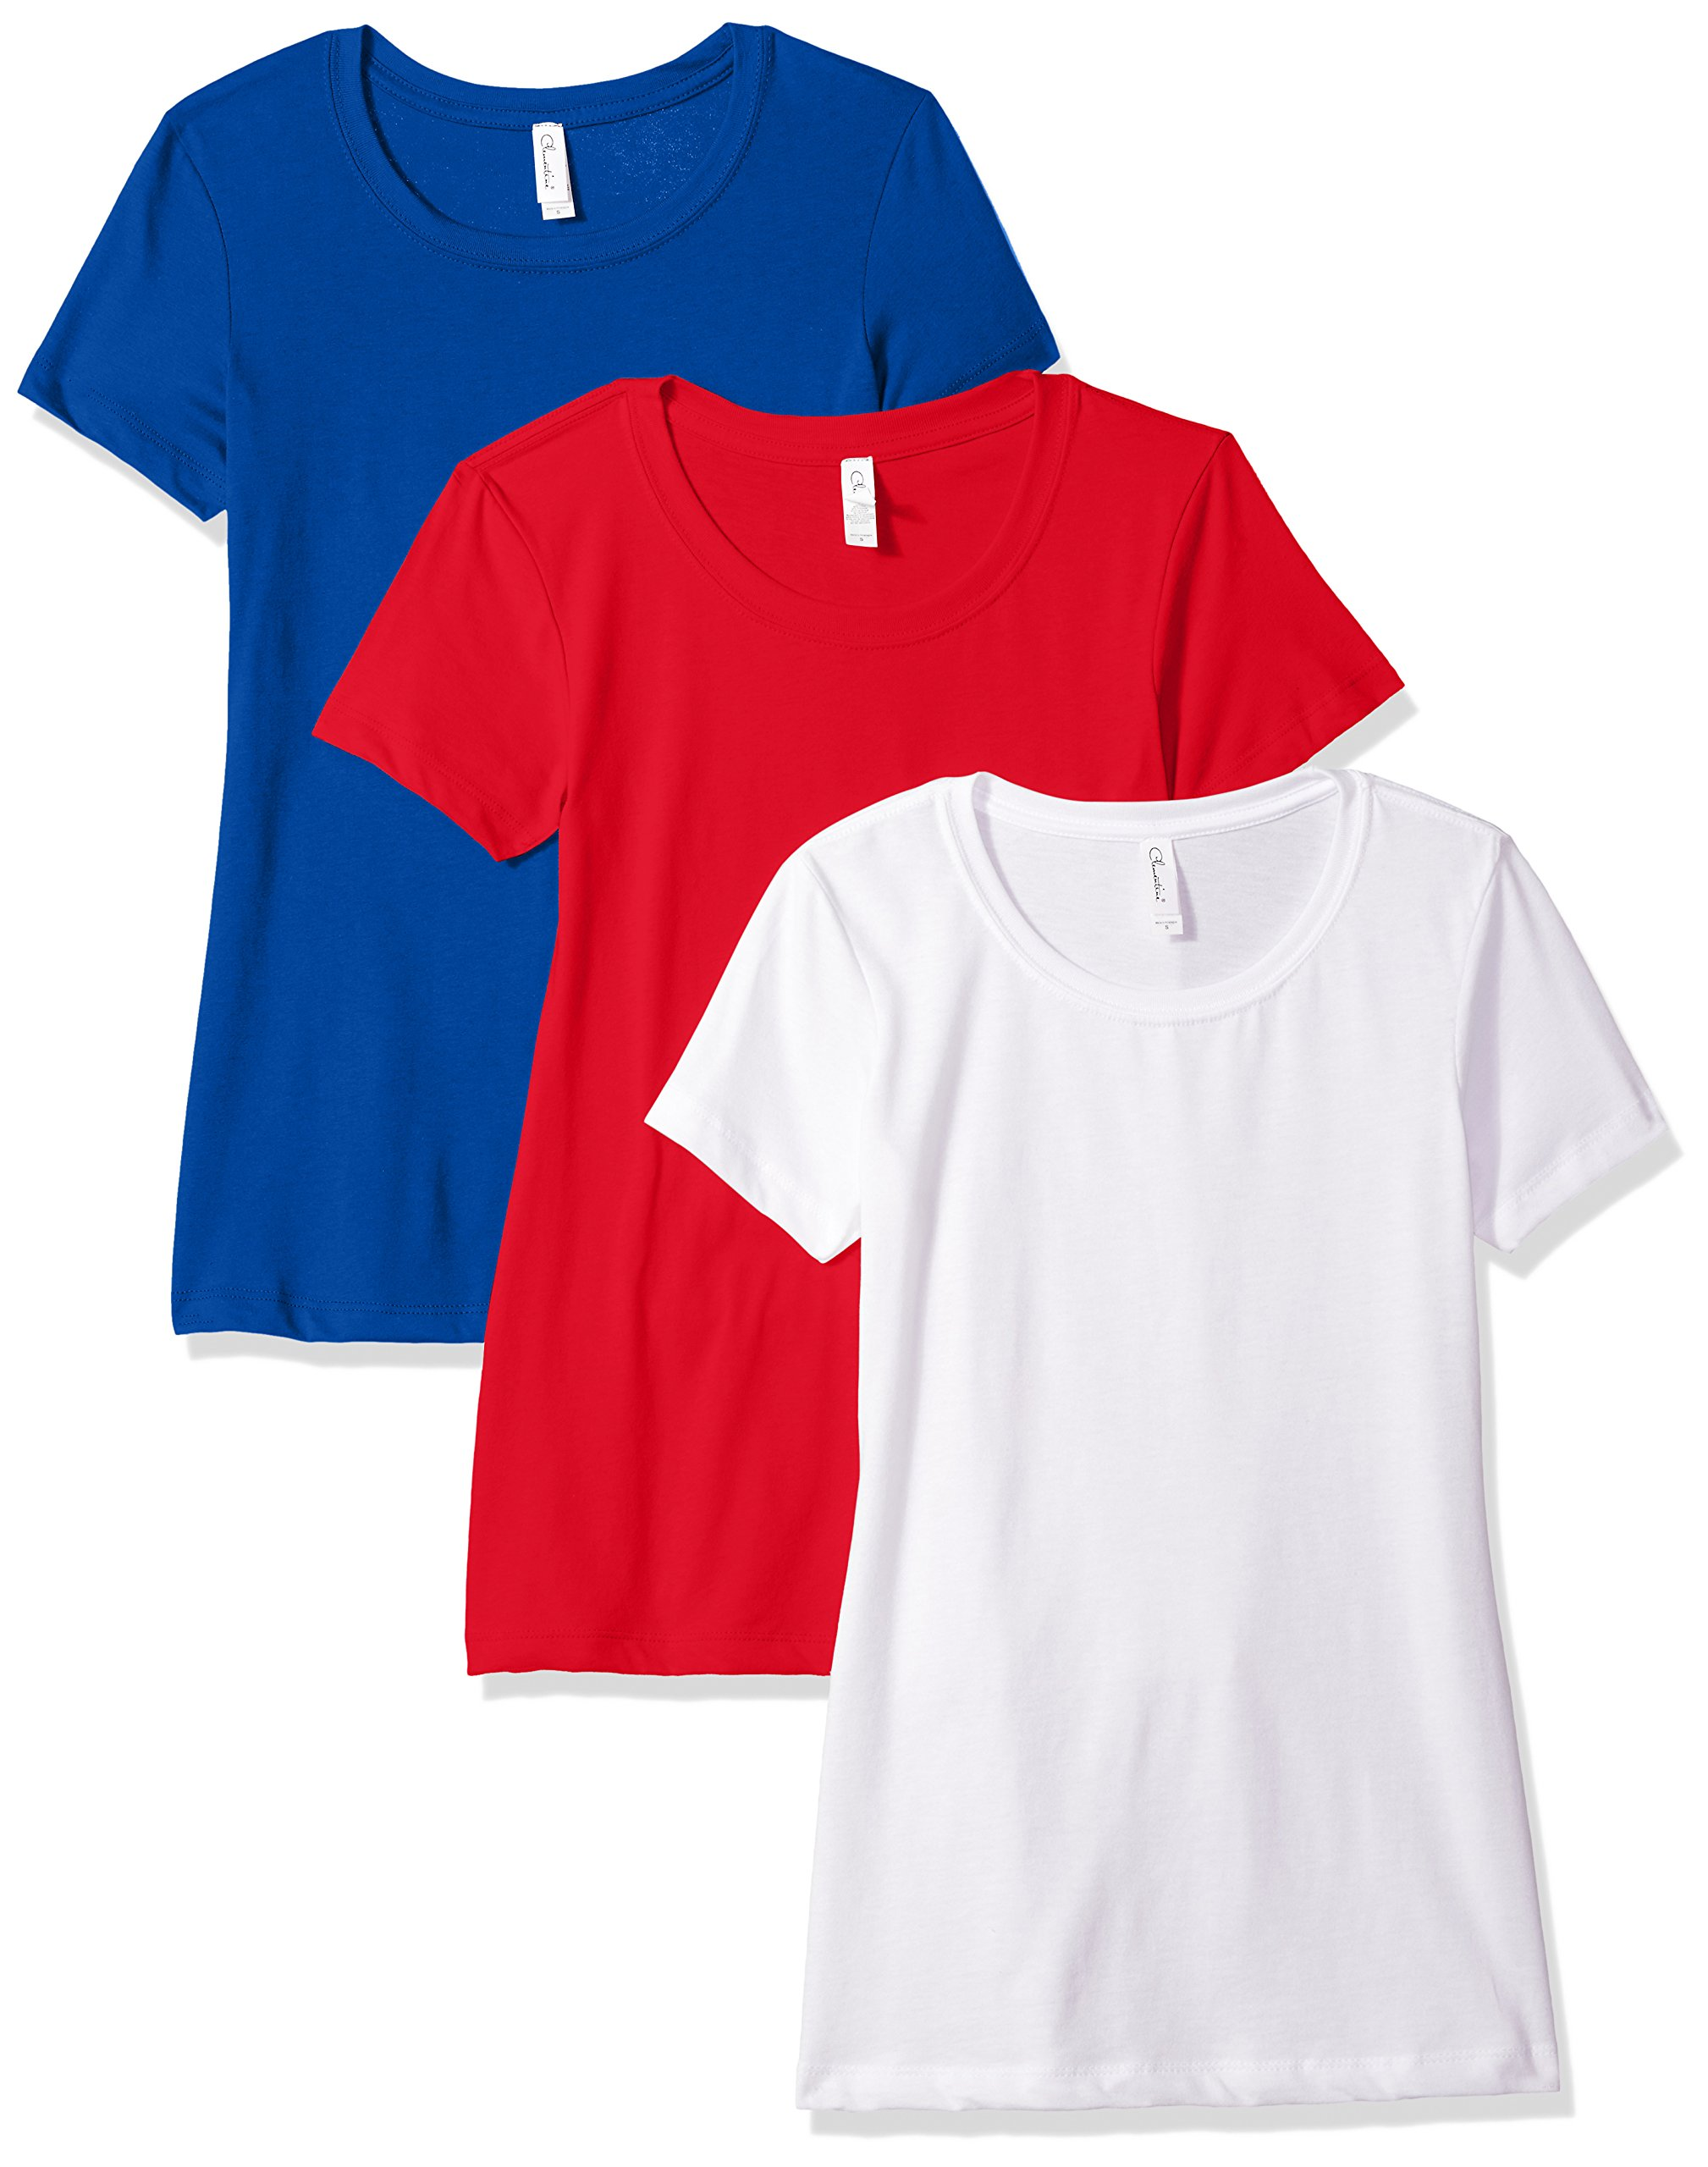 Clementine Apparel Women's Petite Plus Ideal Crew-Neck T-Shirts (Pack of 3), WhiteRedRoyal, S